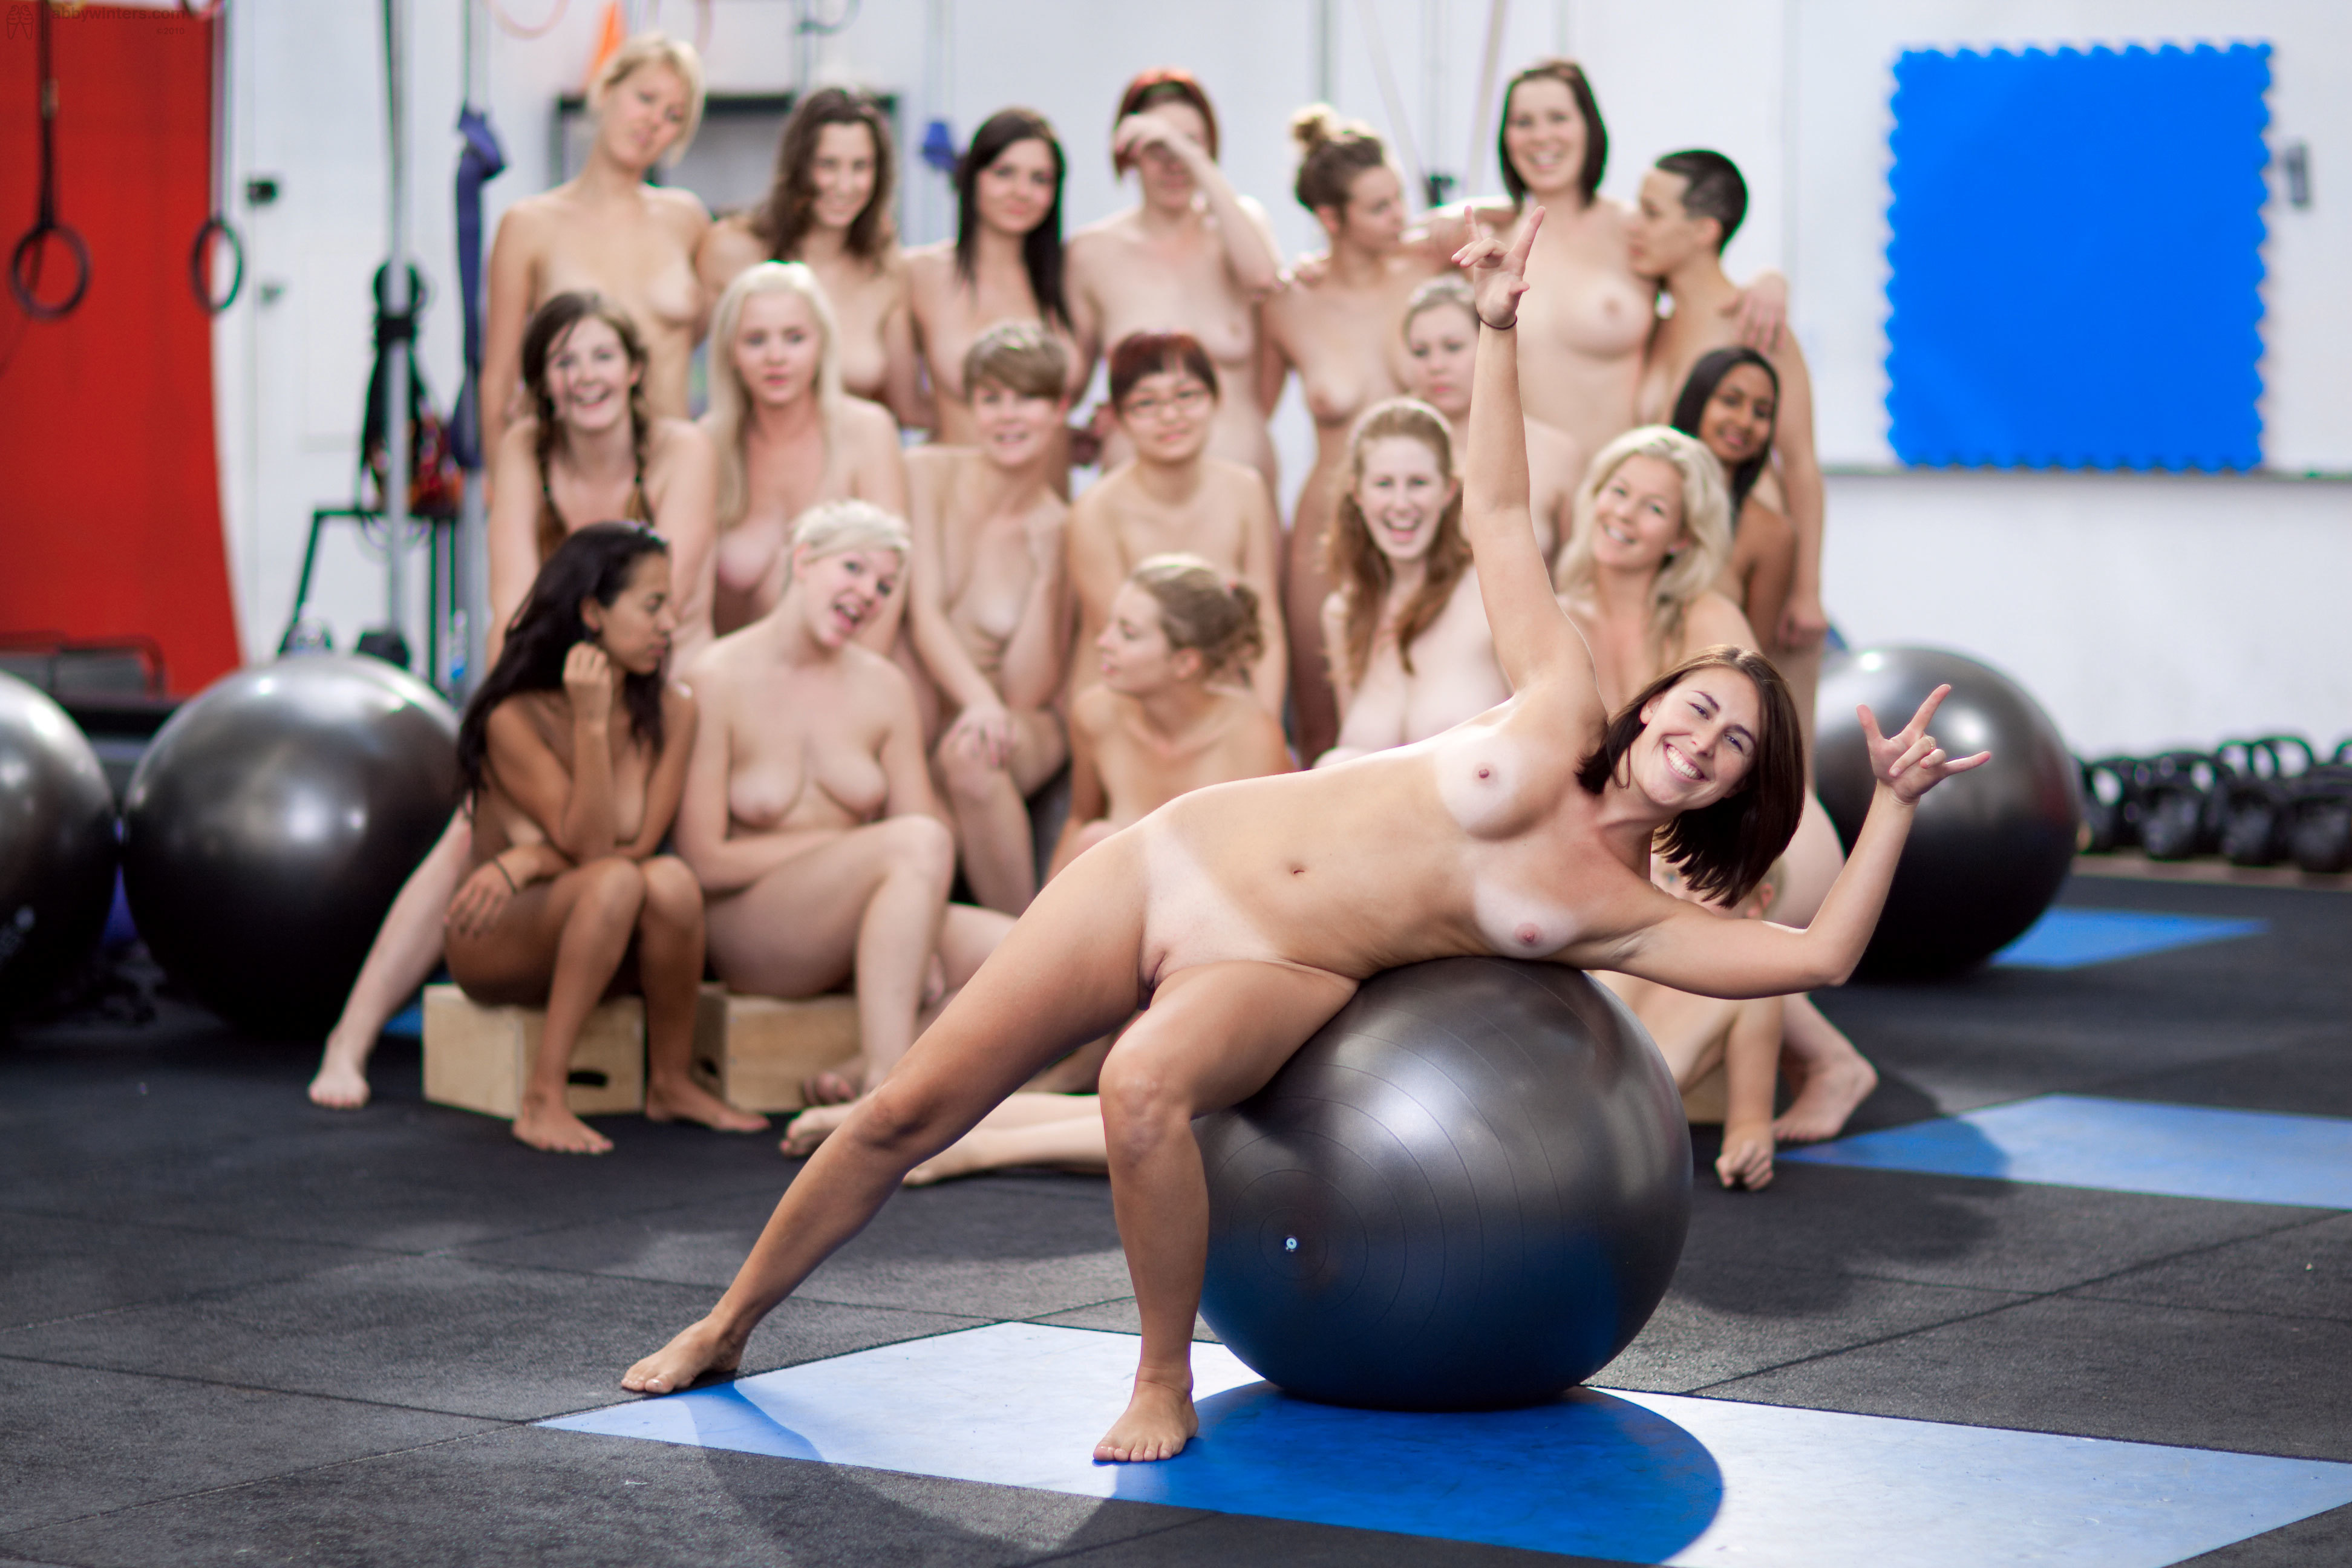 Sex gym class girls, the hills have eyes nudity